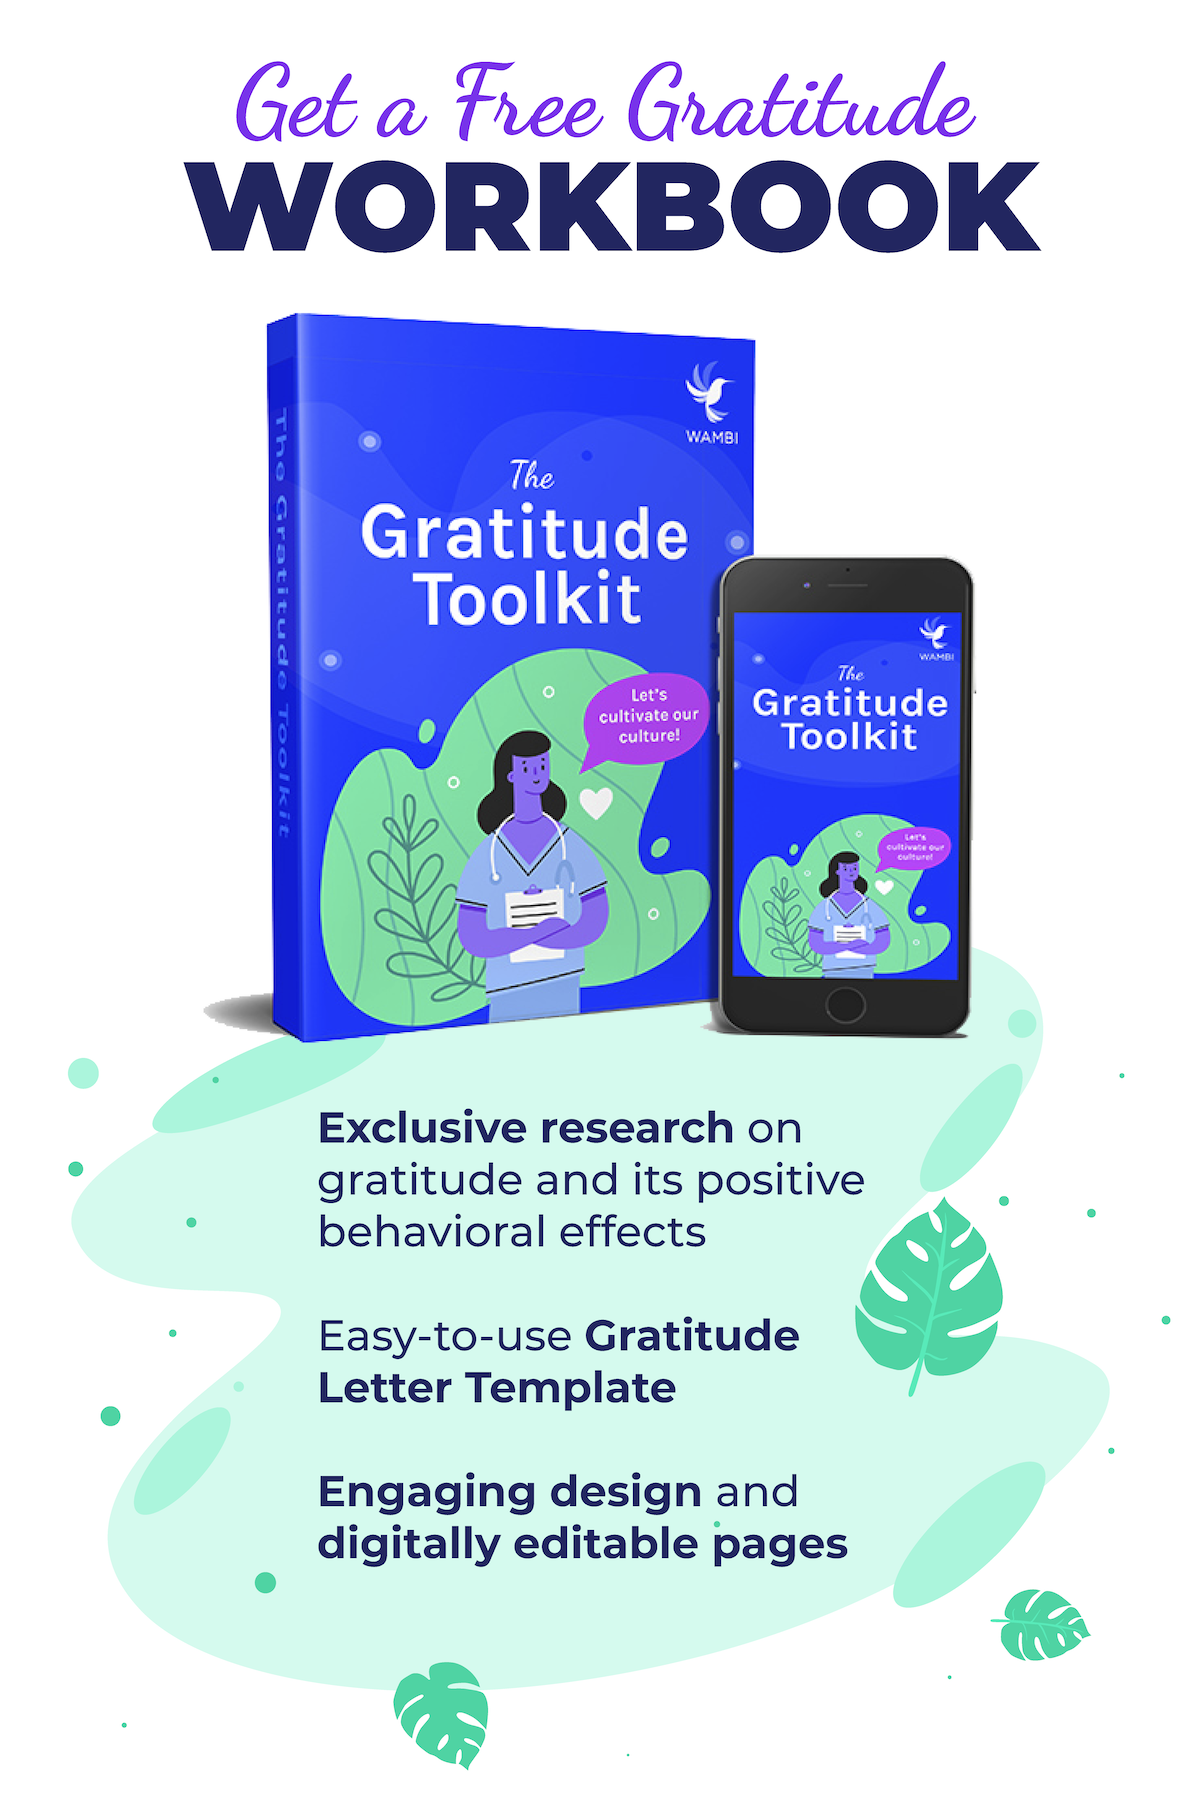 The Gratitude Toolkit is yours to download for free!